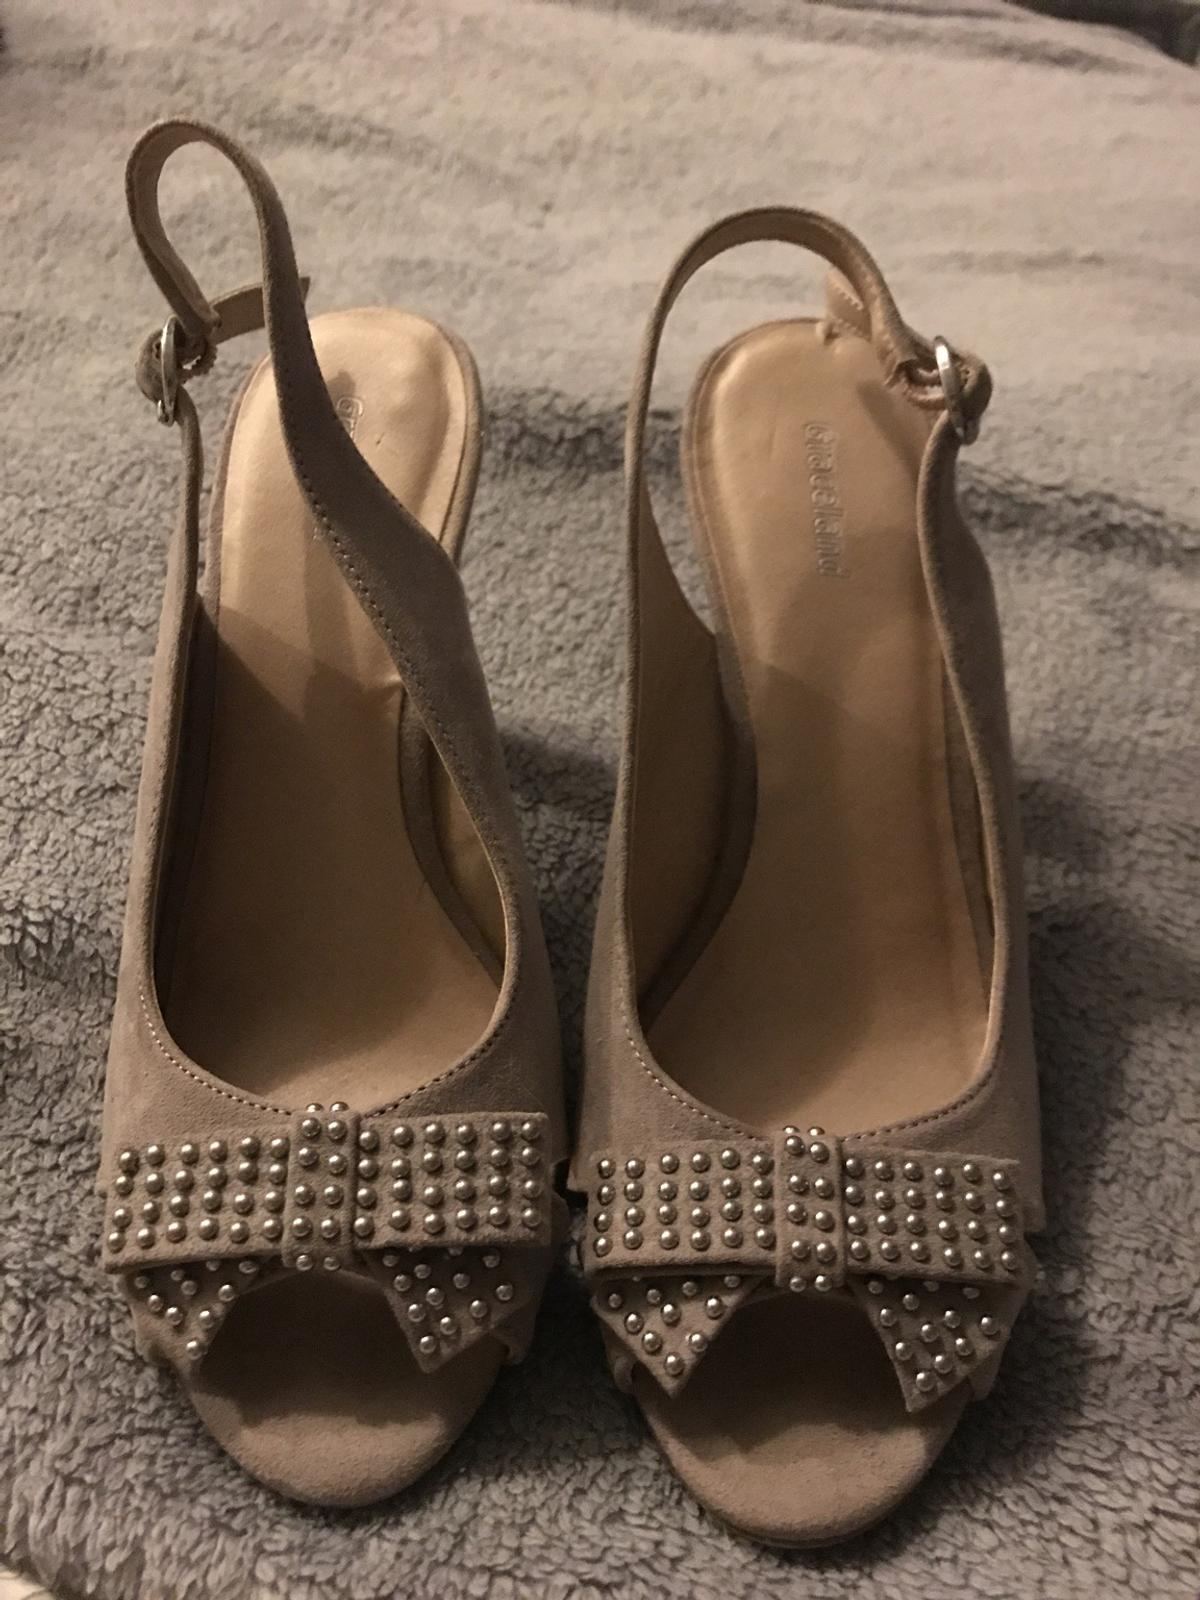 Size 4 ladies beige open toes suede shoe with bow design